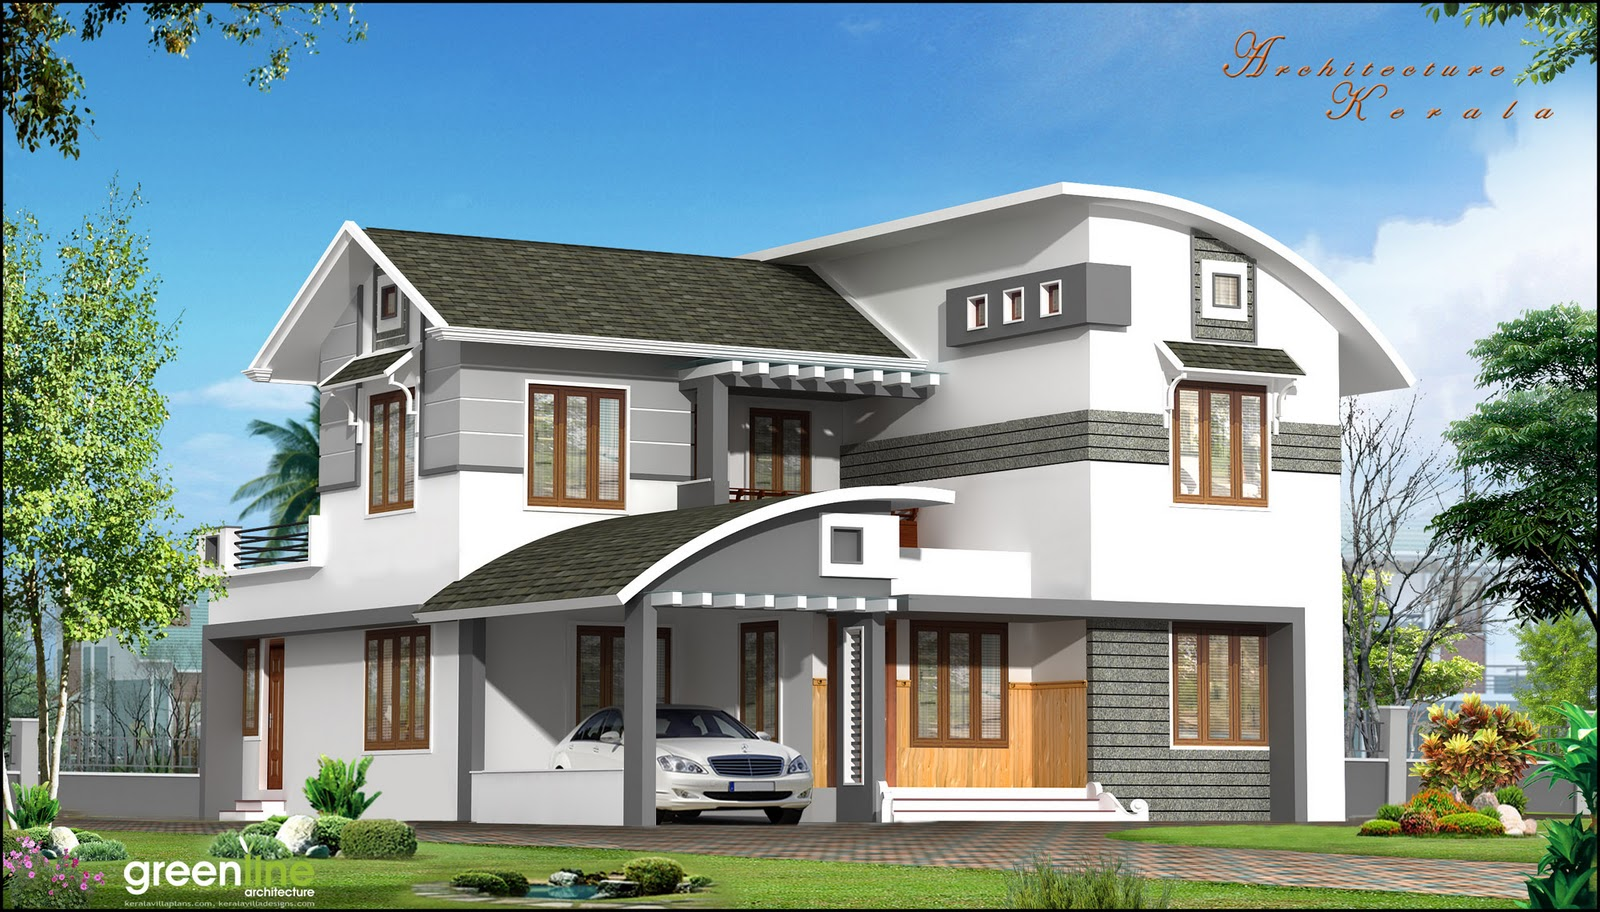 Architecture kerala a beautiful house elevation for Kerala building elevation